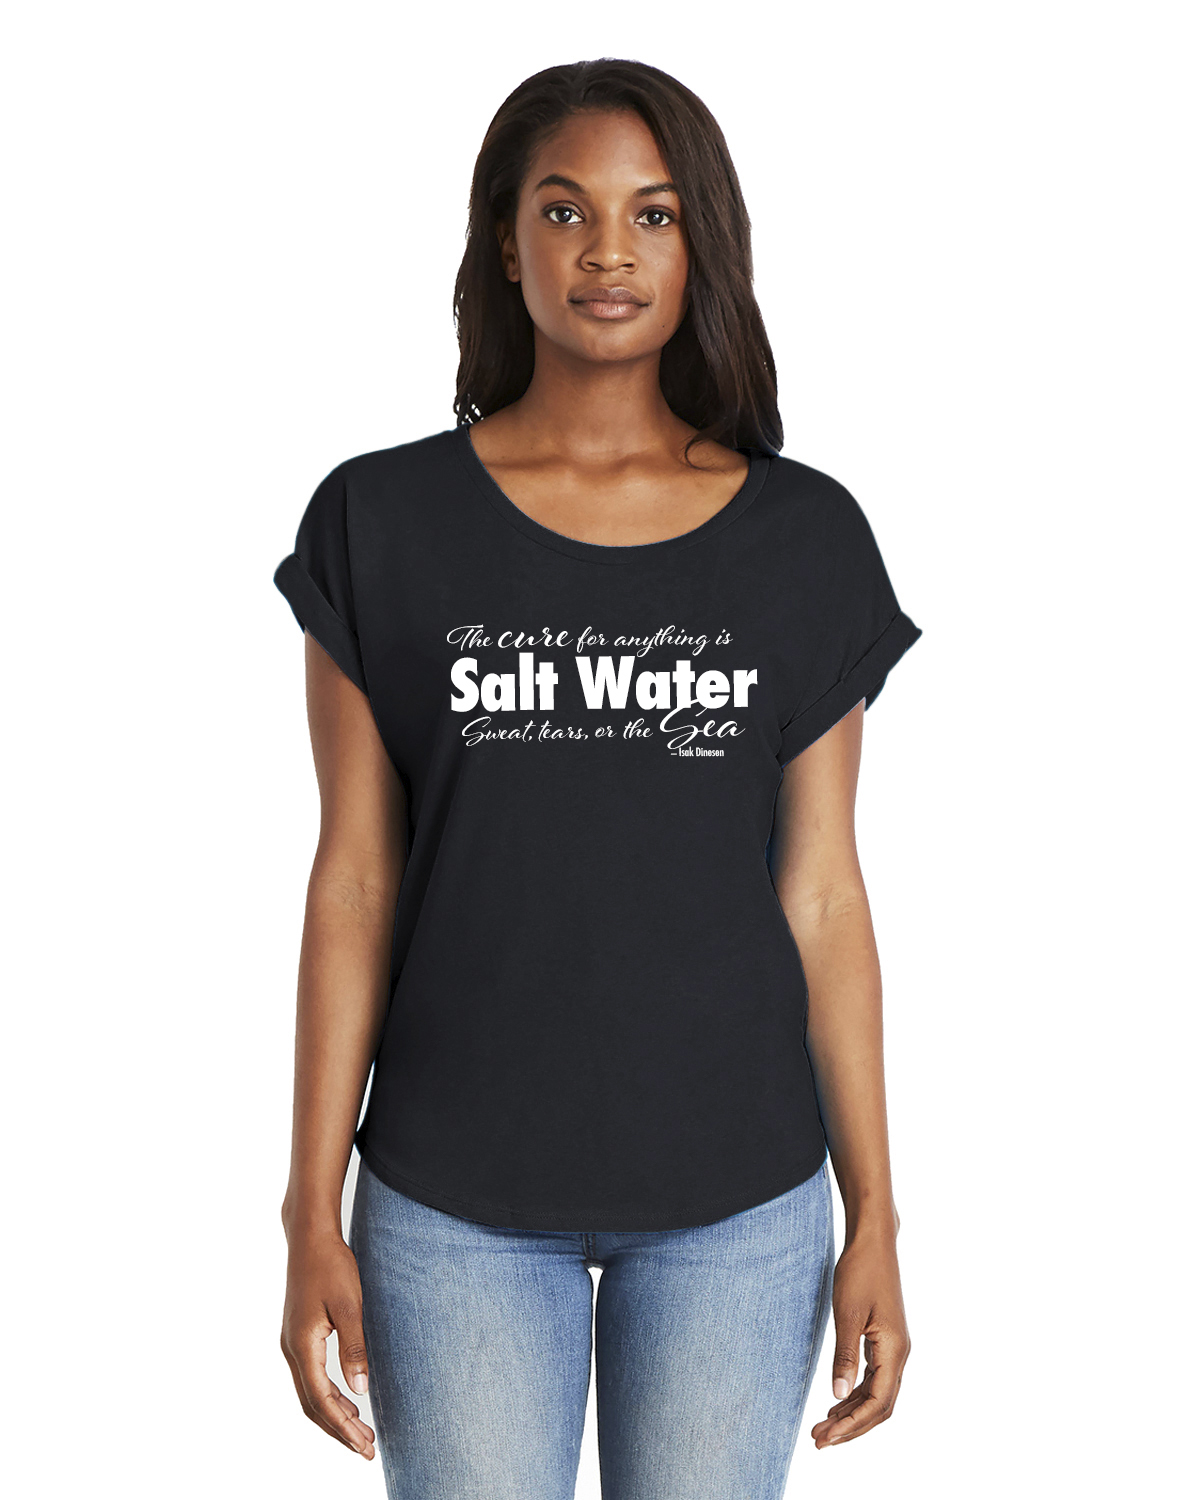 Women's Dolman Sleeve Salt Water QuoteT-shirt (Black)